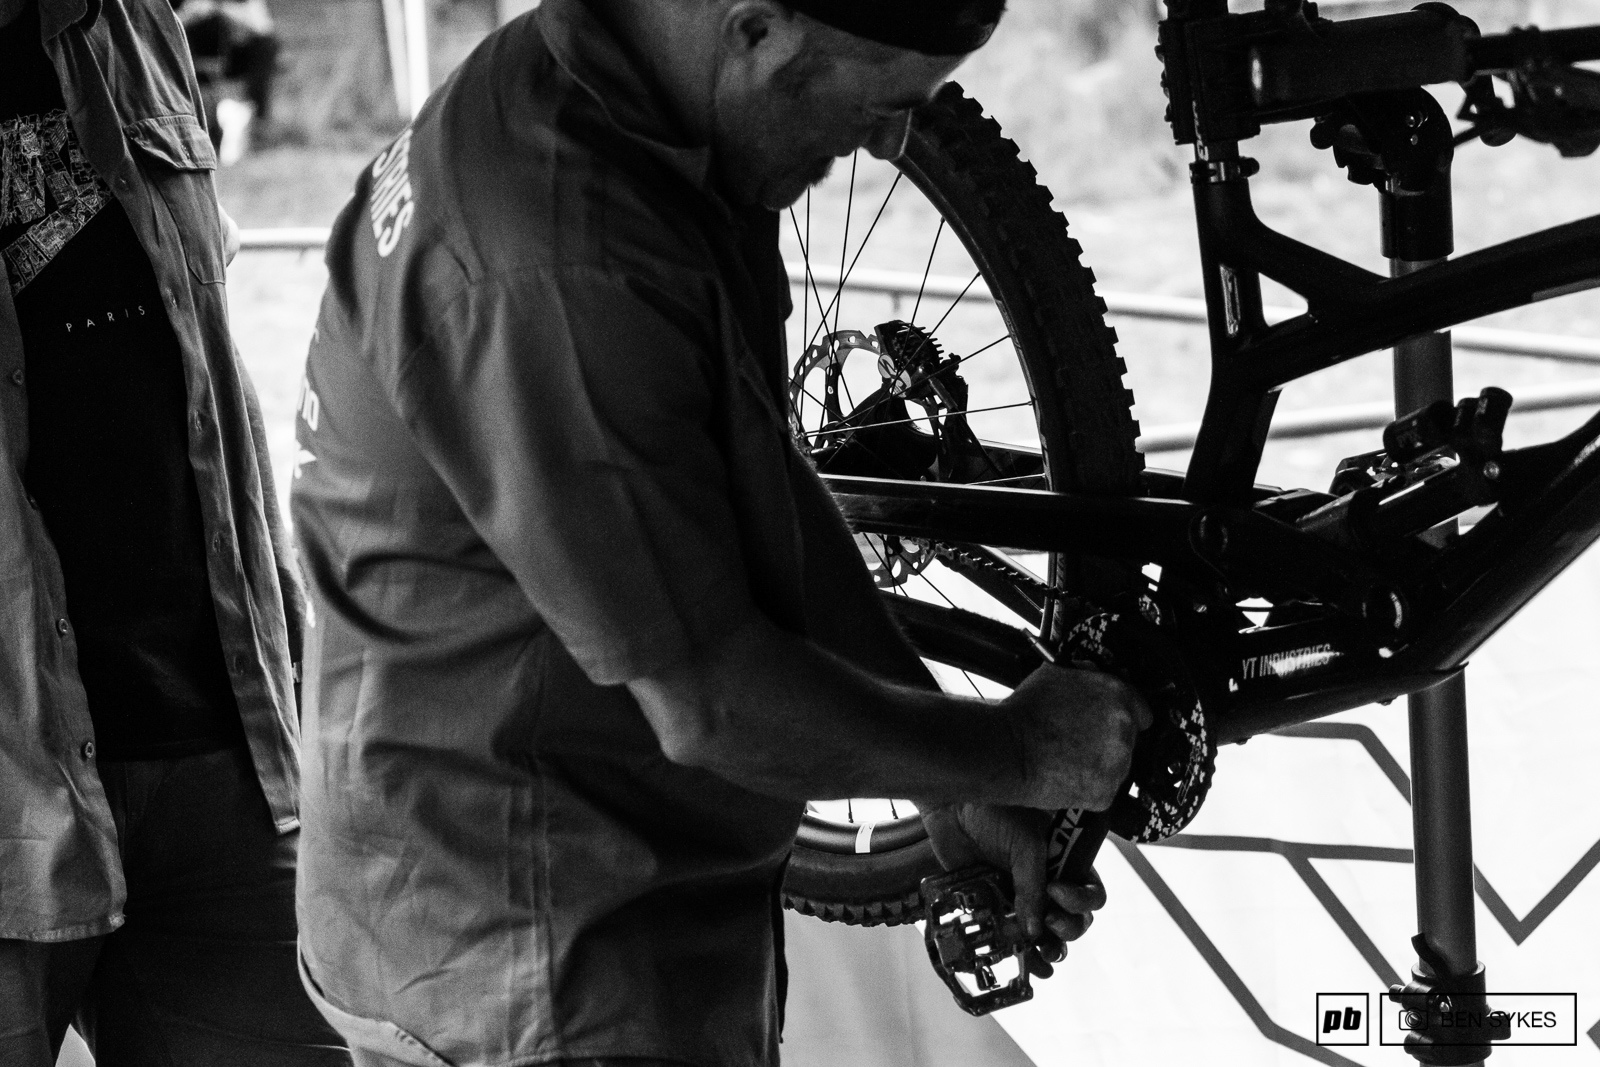 Bill keeping the new YT Racing bikes running smooth and clean.